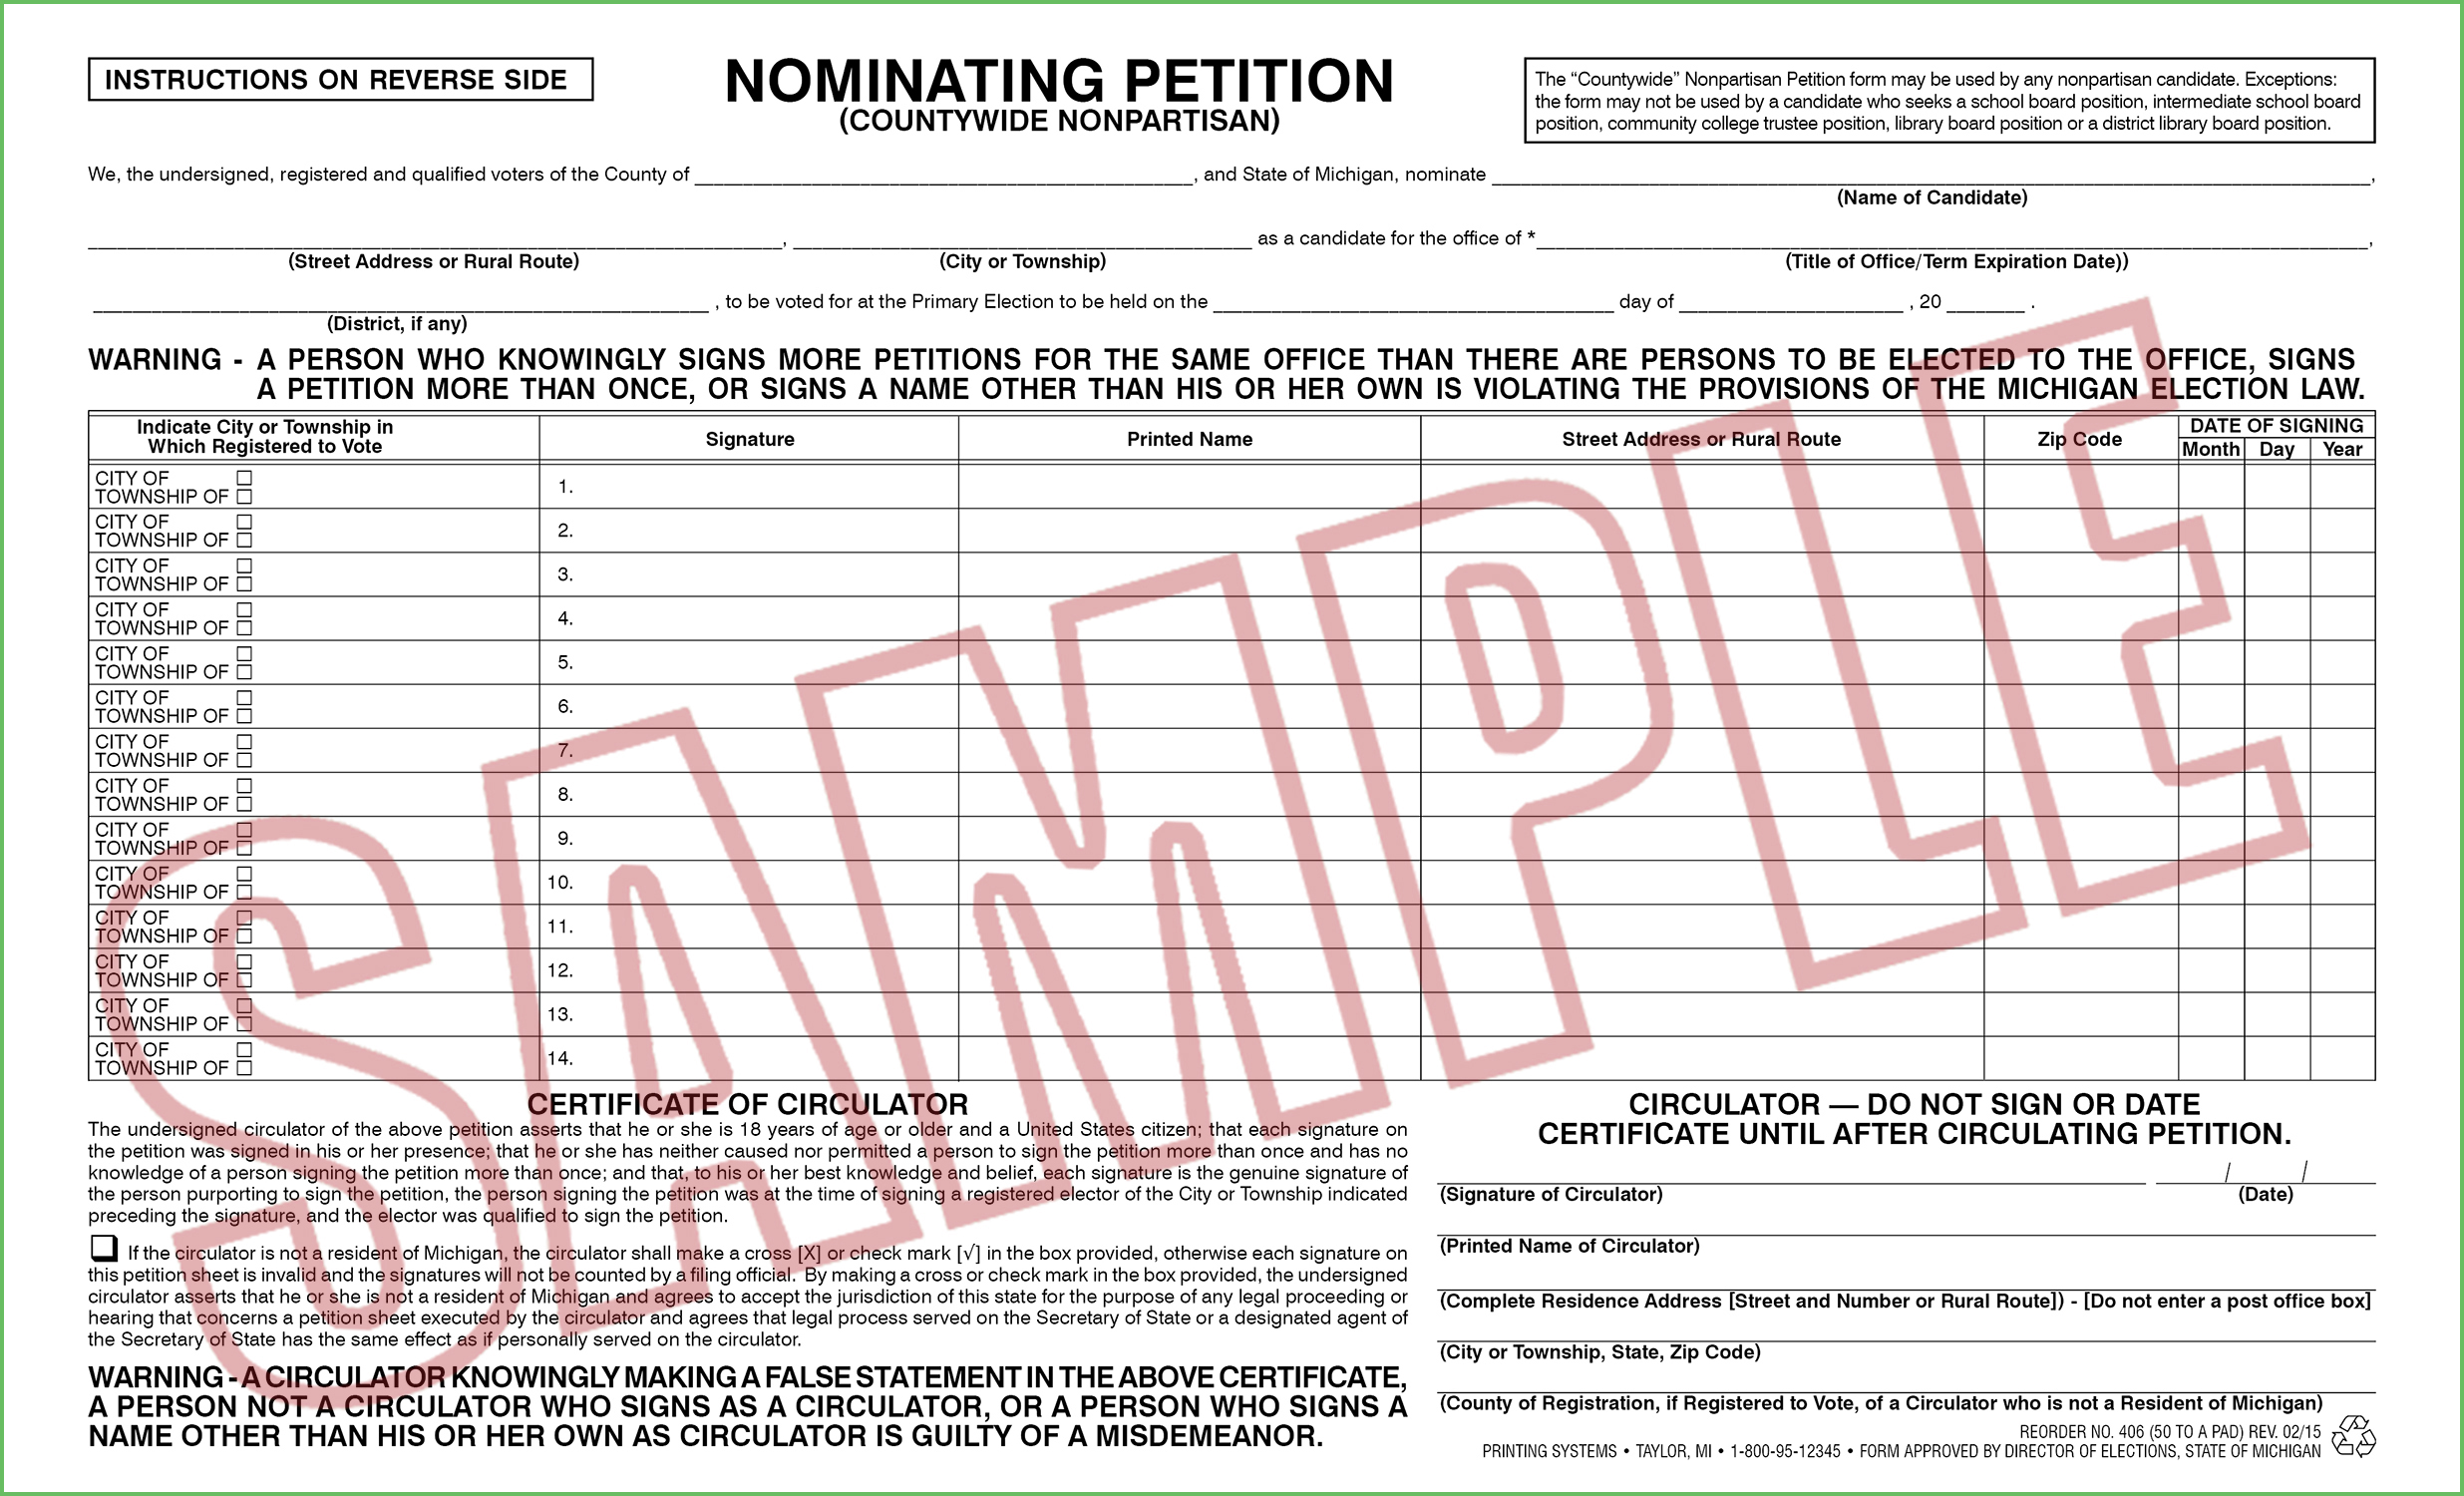 406 Nominating Petition (Countywide) Nonpartisan (50 per pad) Rev. 10/19